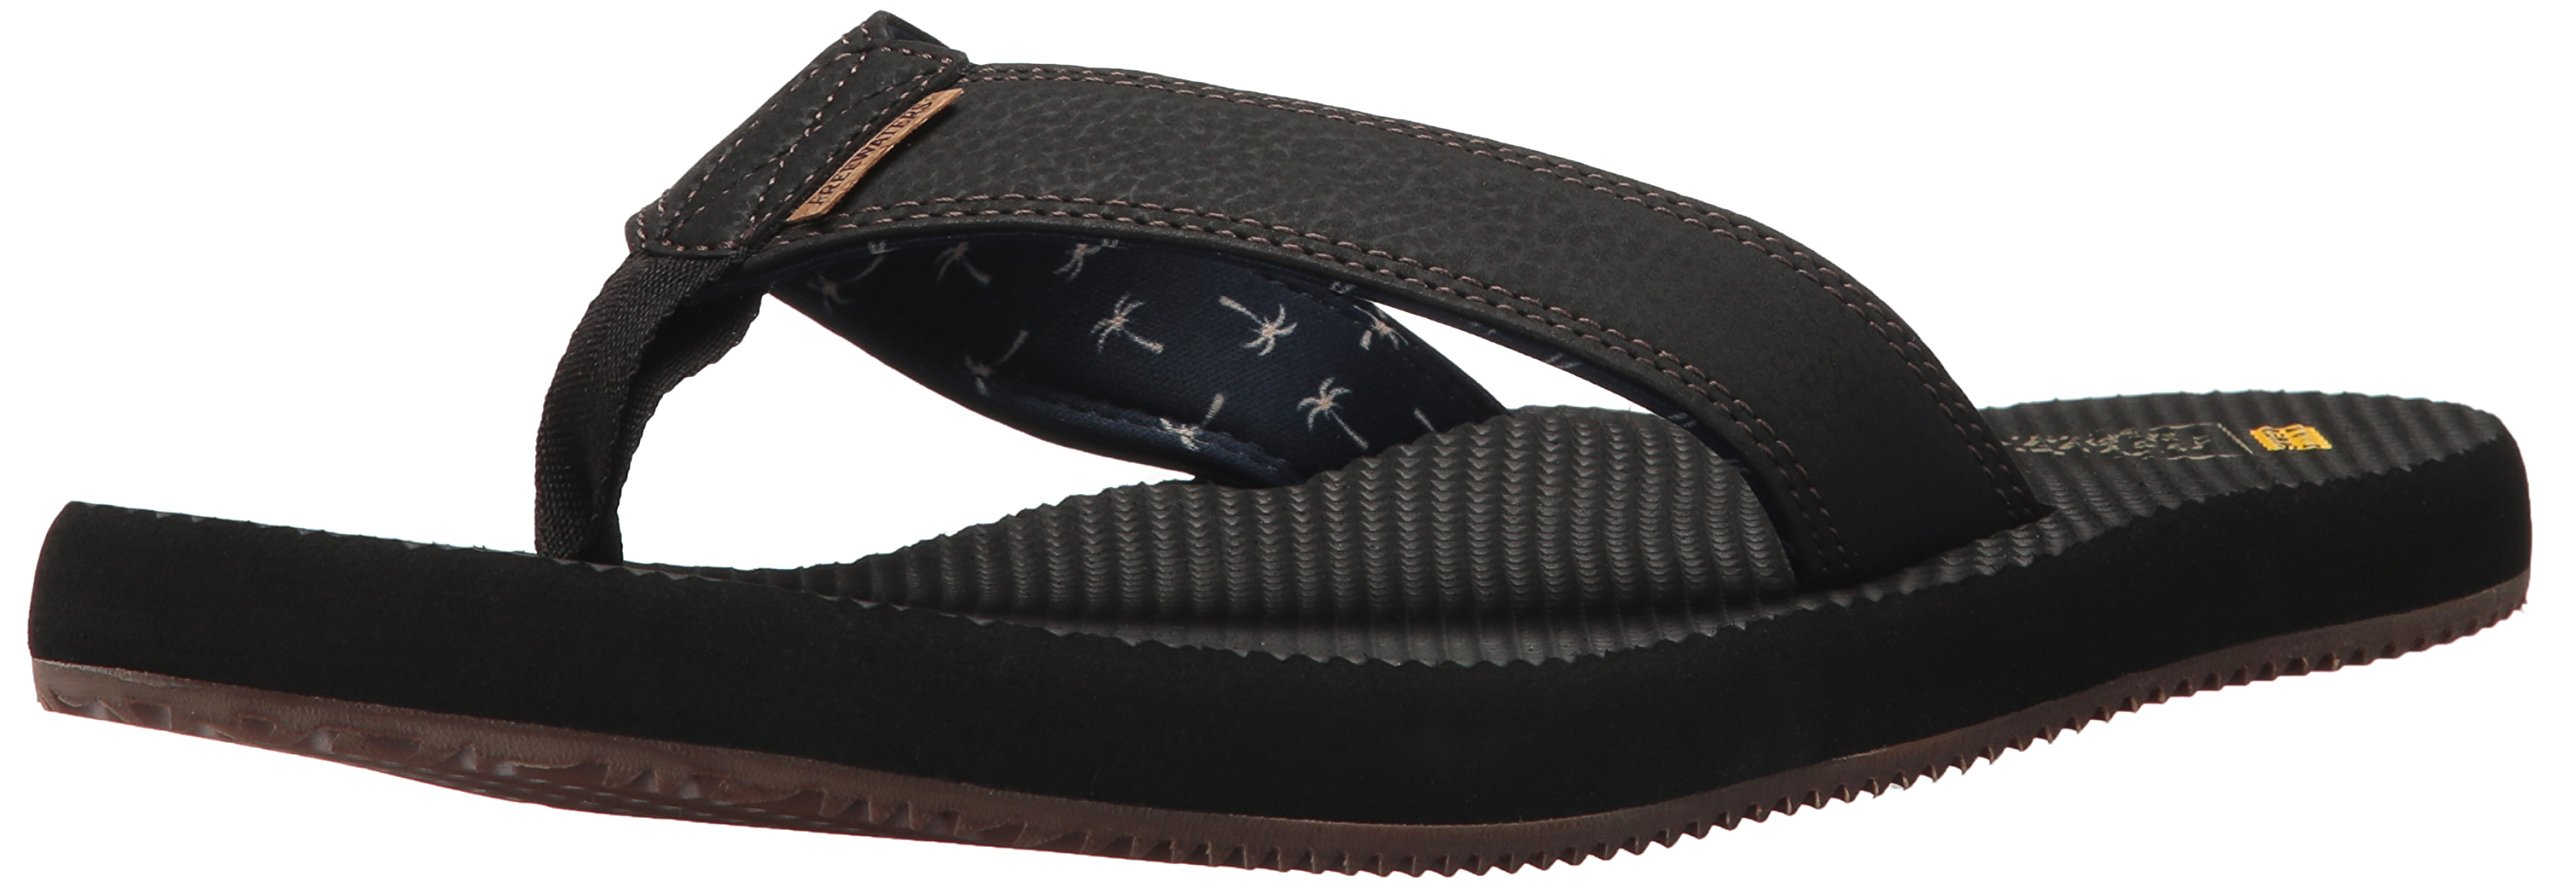 Freewaters Men's Supreem Dude Flip-Flop, Black, 11 Medium US by Freewaters (Image #1)